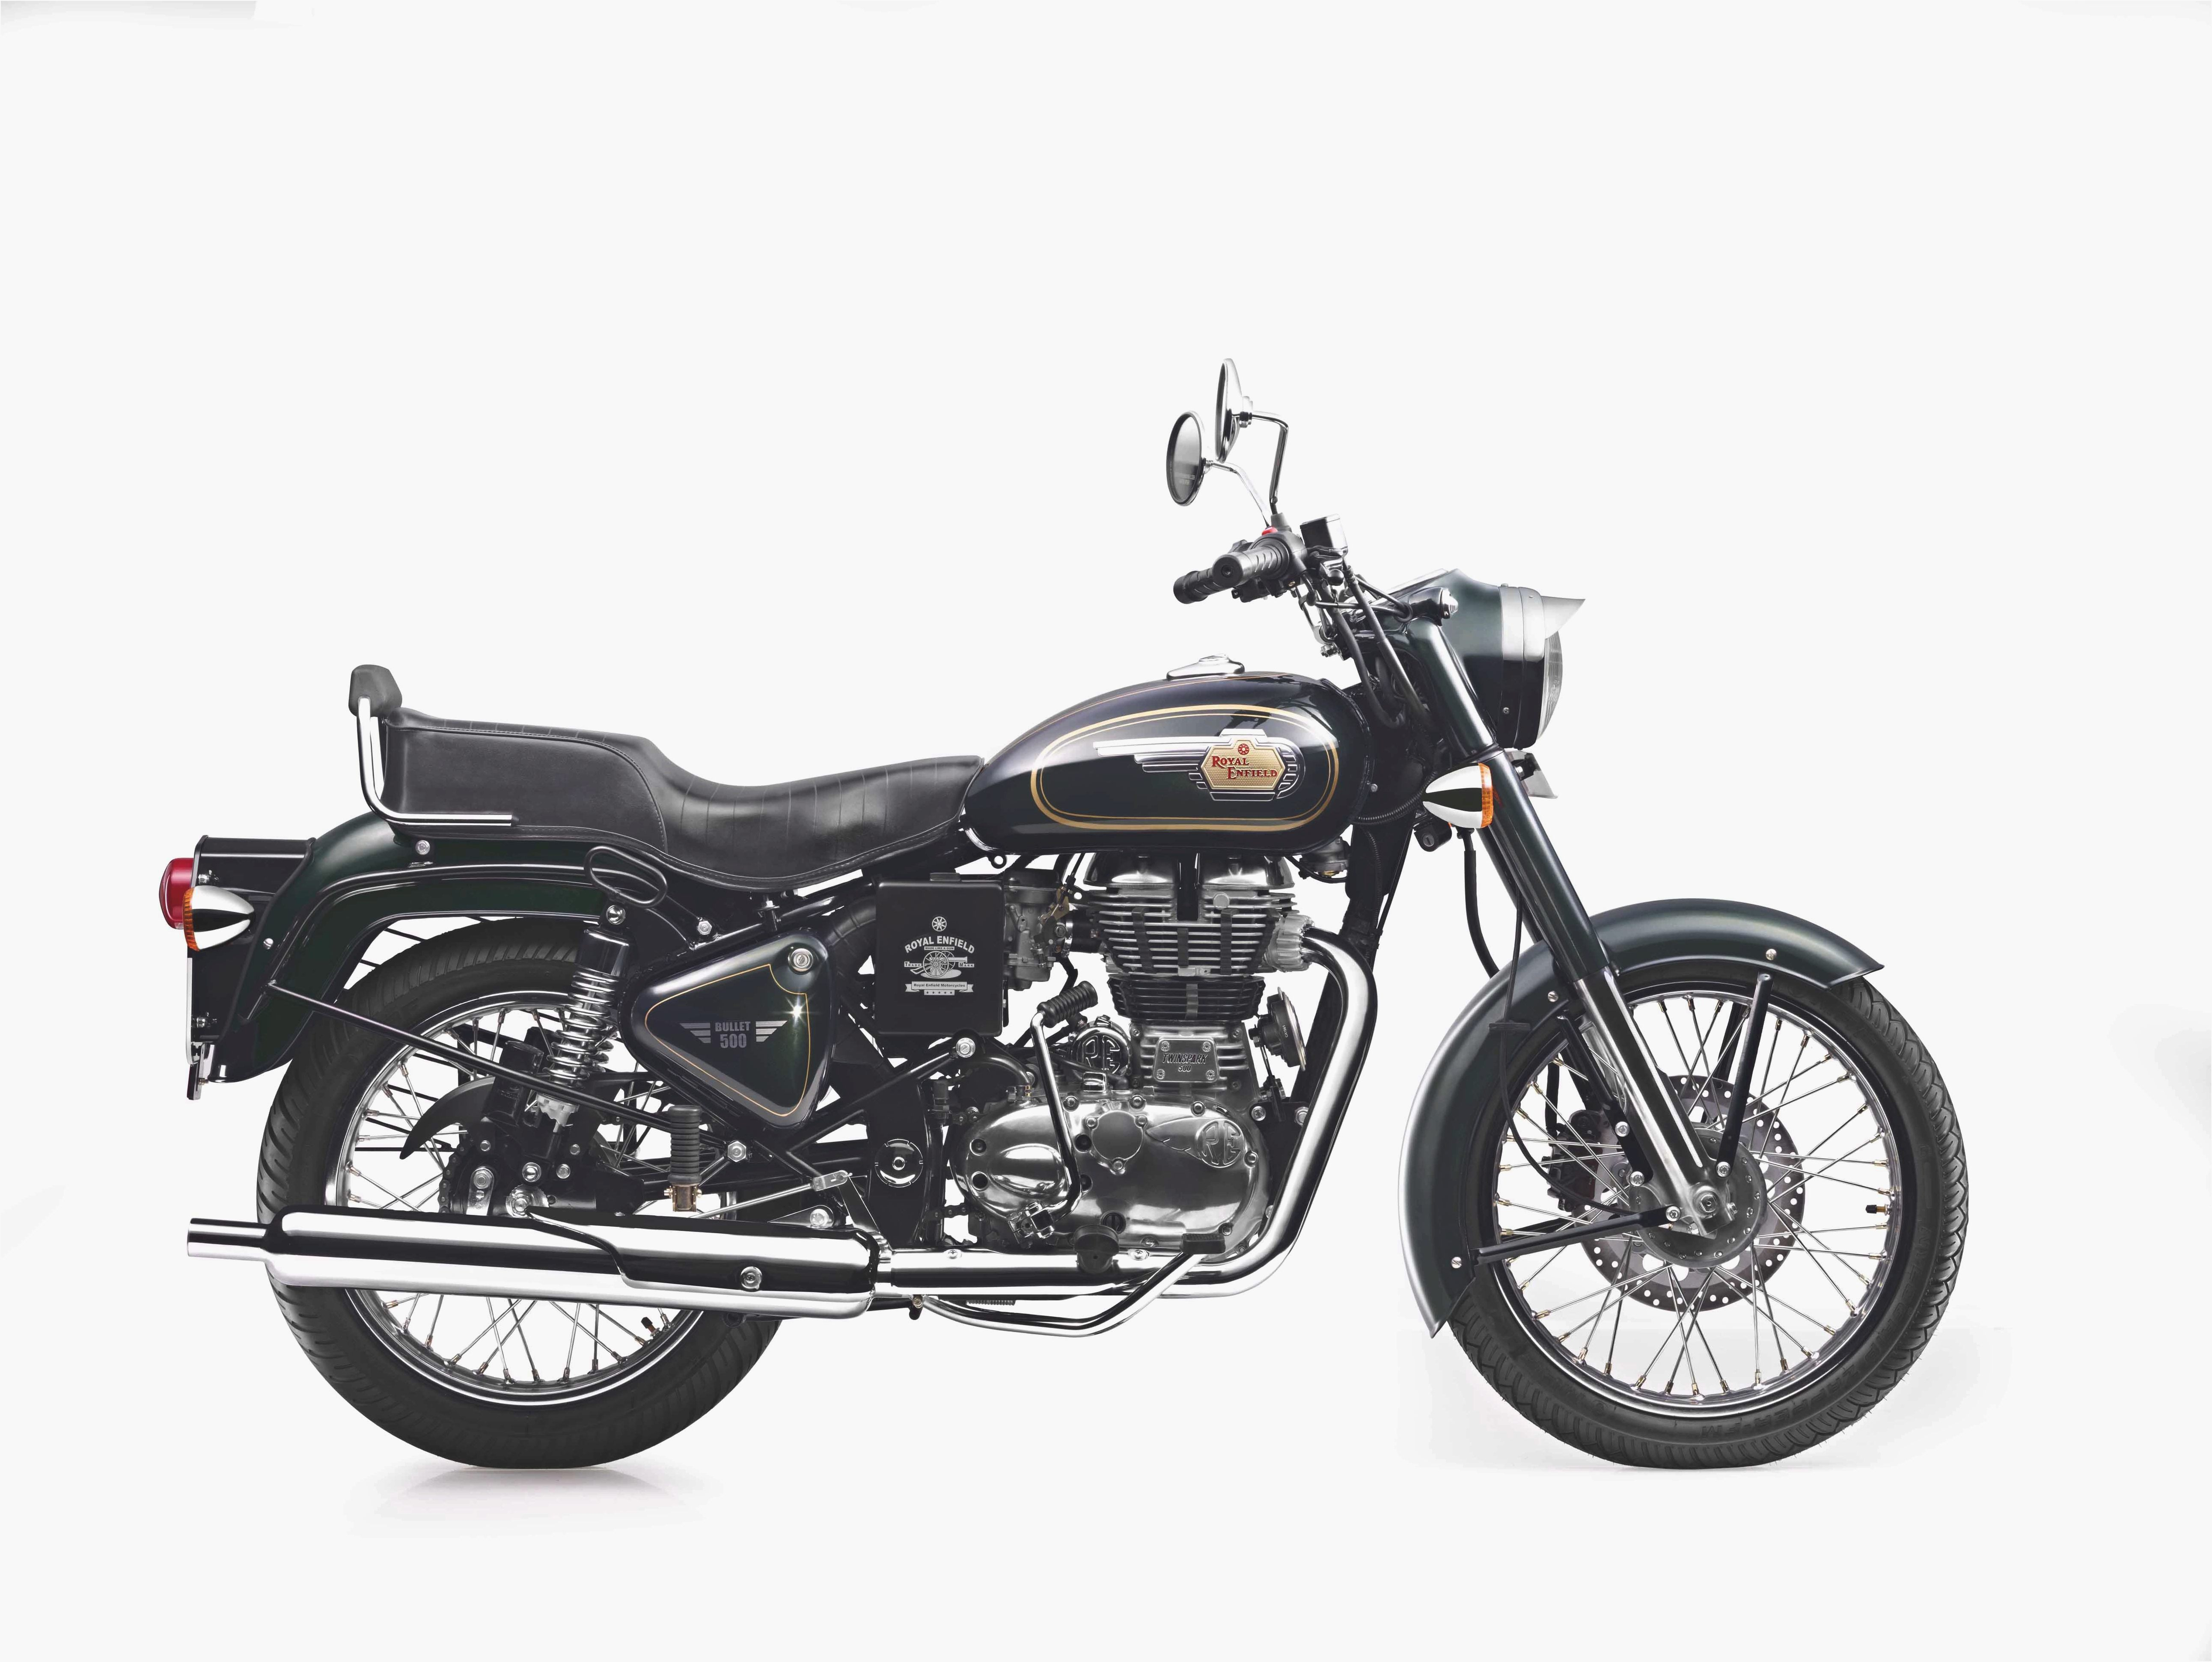 Royal Enfield Bullet 500 Army 1997 images #158646